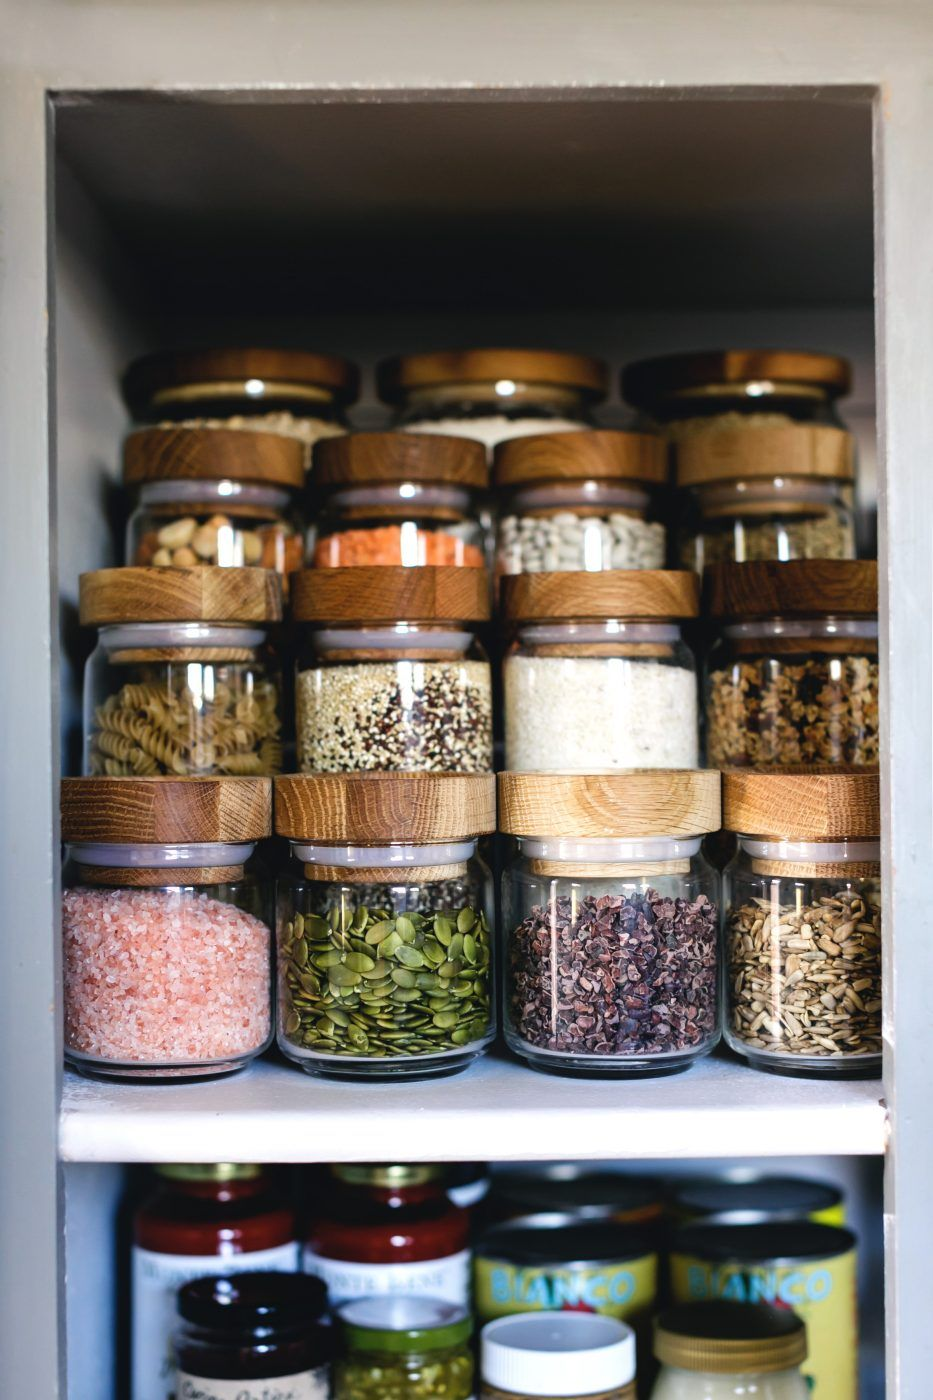 20 Pantry Organization Tips To Make Your Pantry Feel Huge